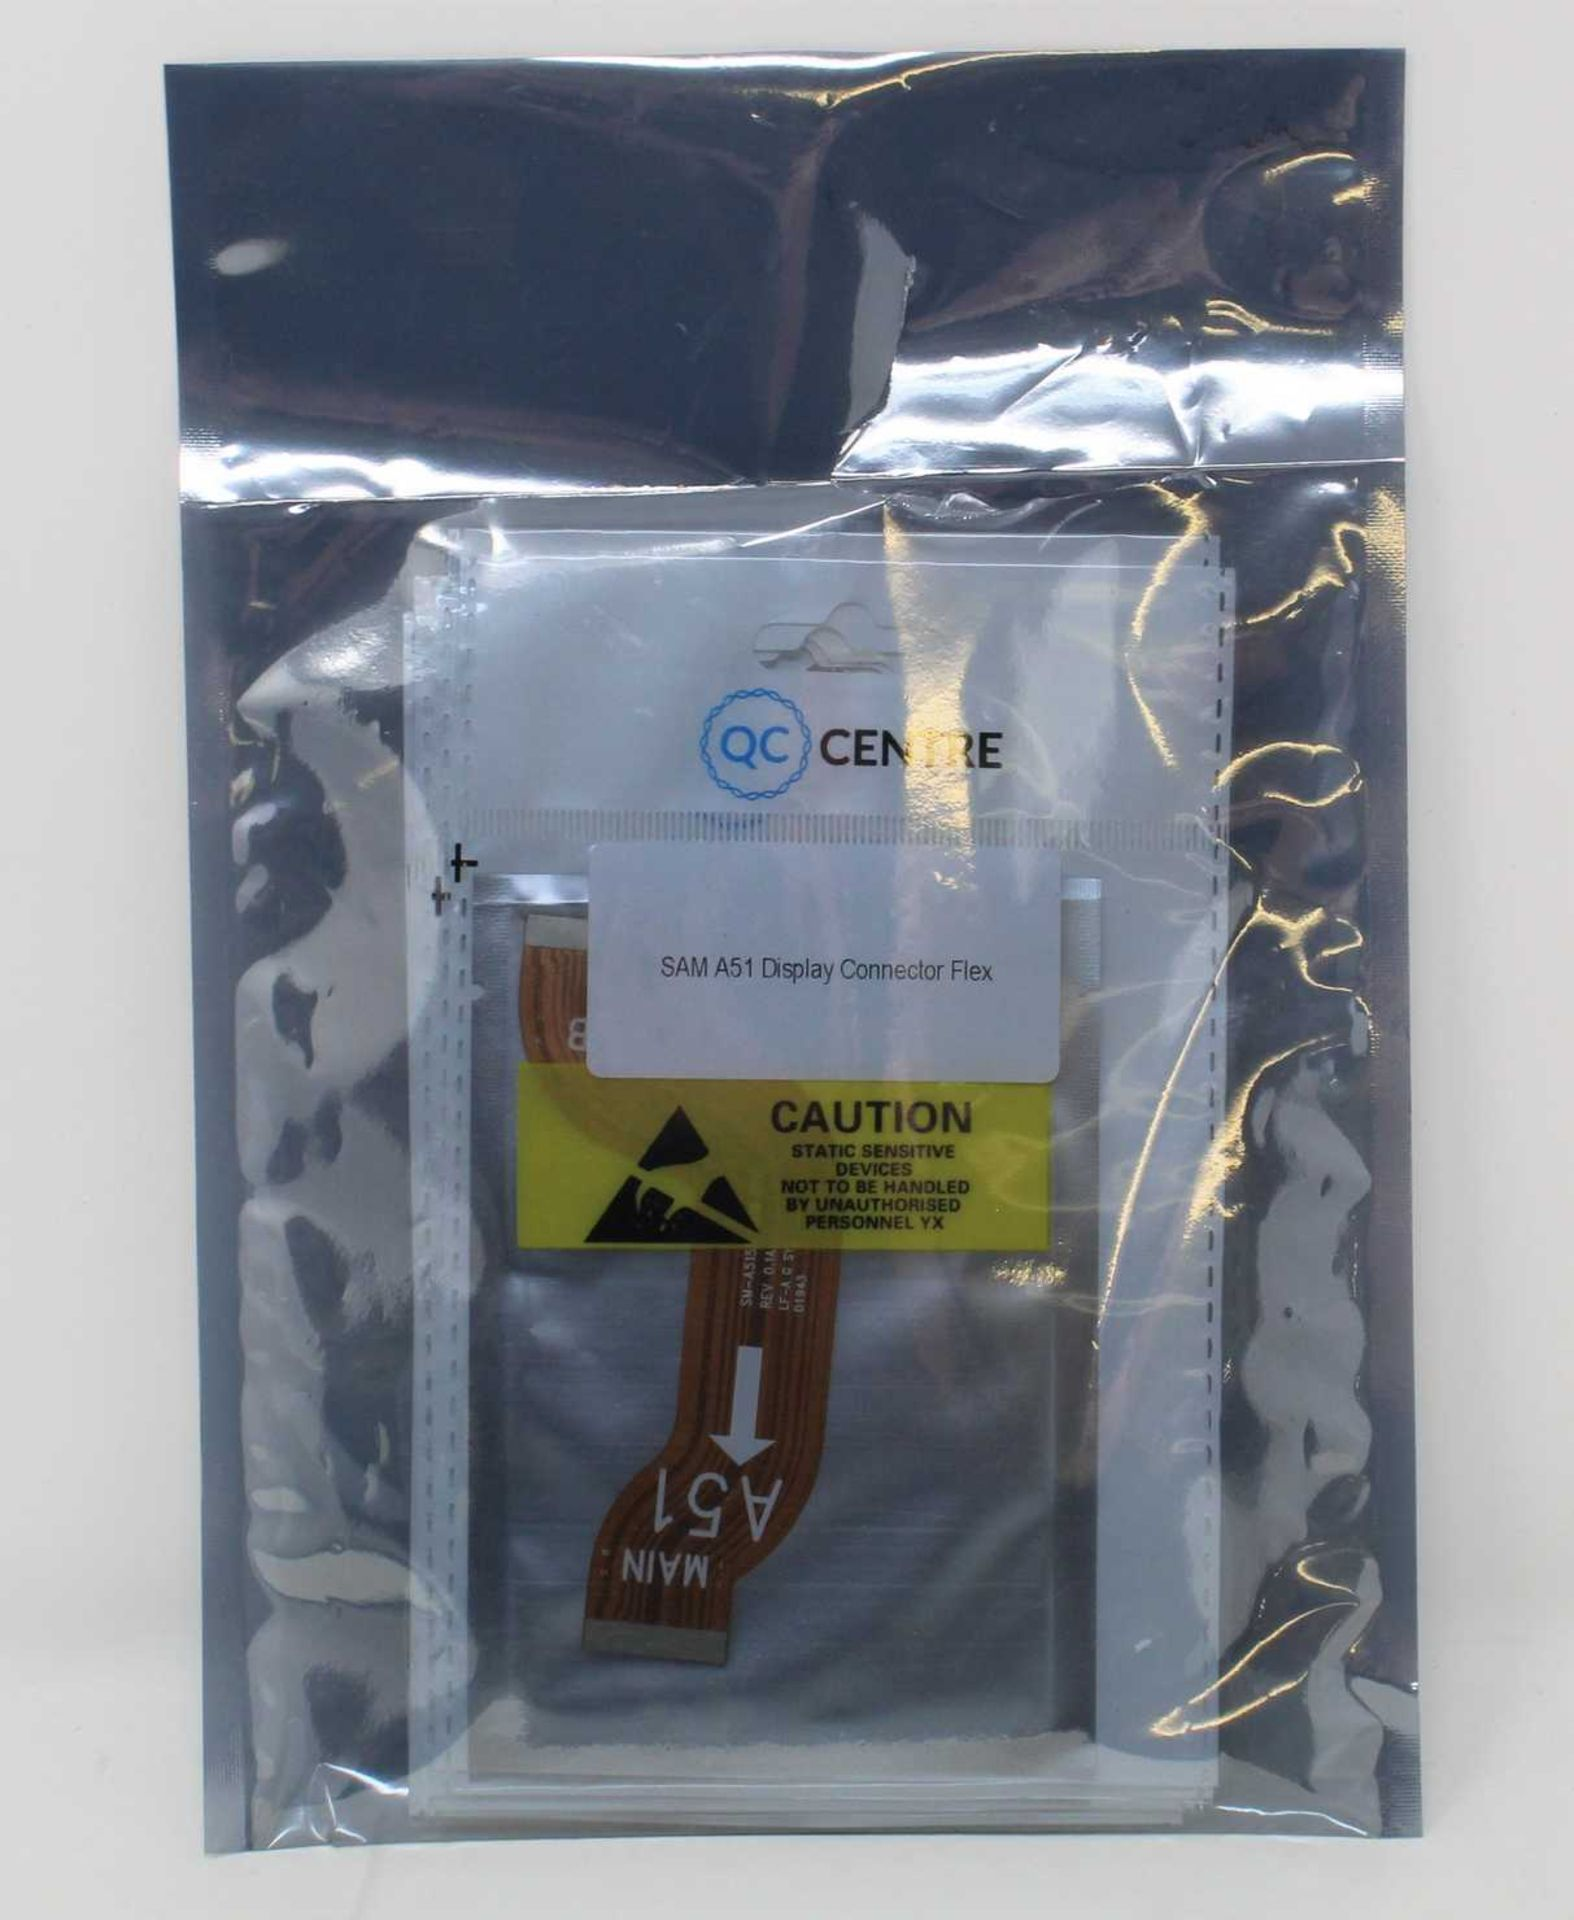 Ten as new QC Centre replacement front cameras for Samsung A920 (Packaging sealed).